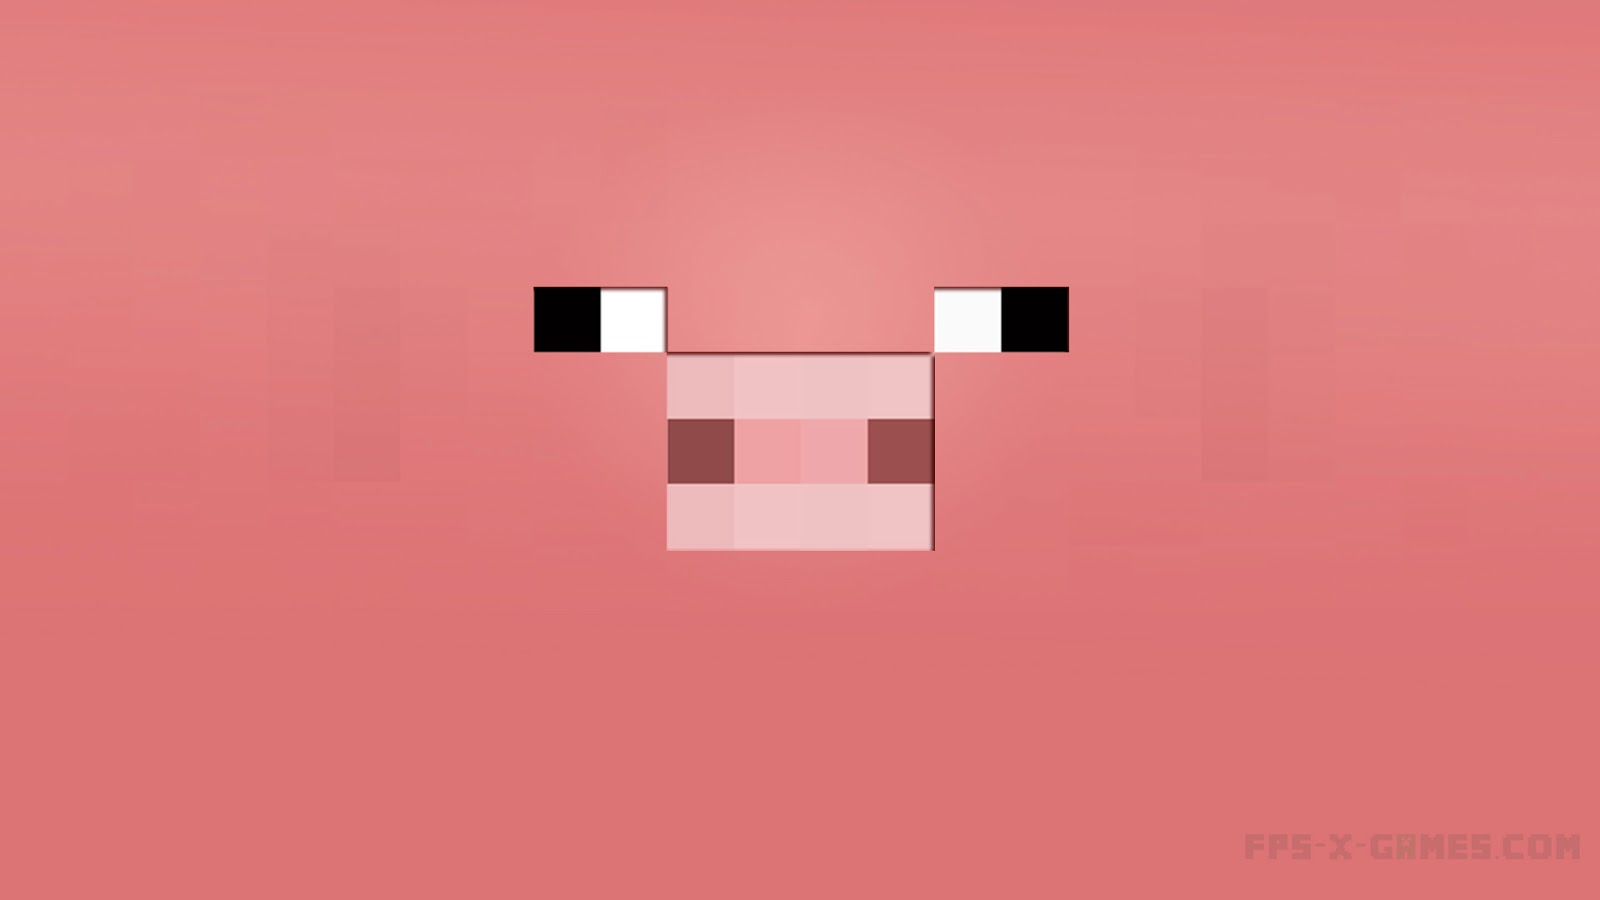 minecraft pig wallpapers download - photo #2